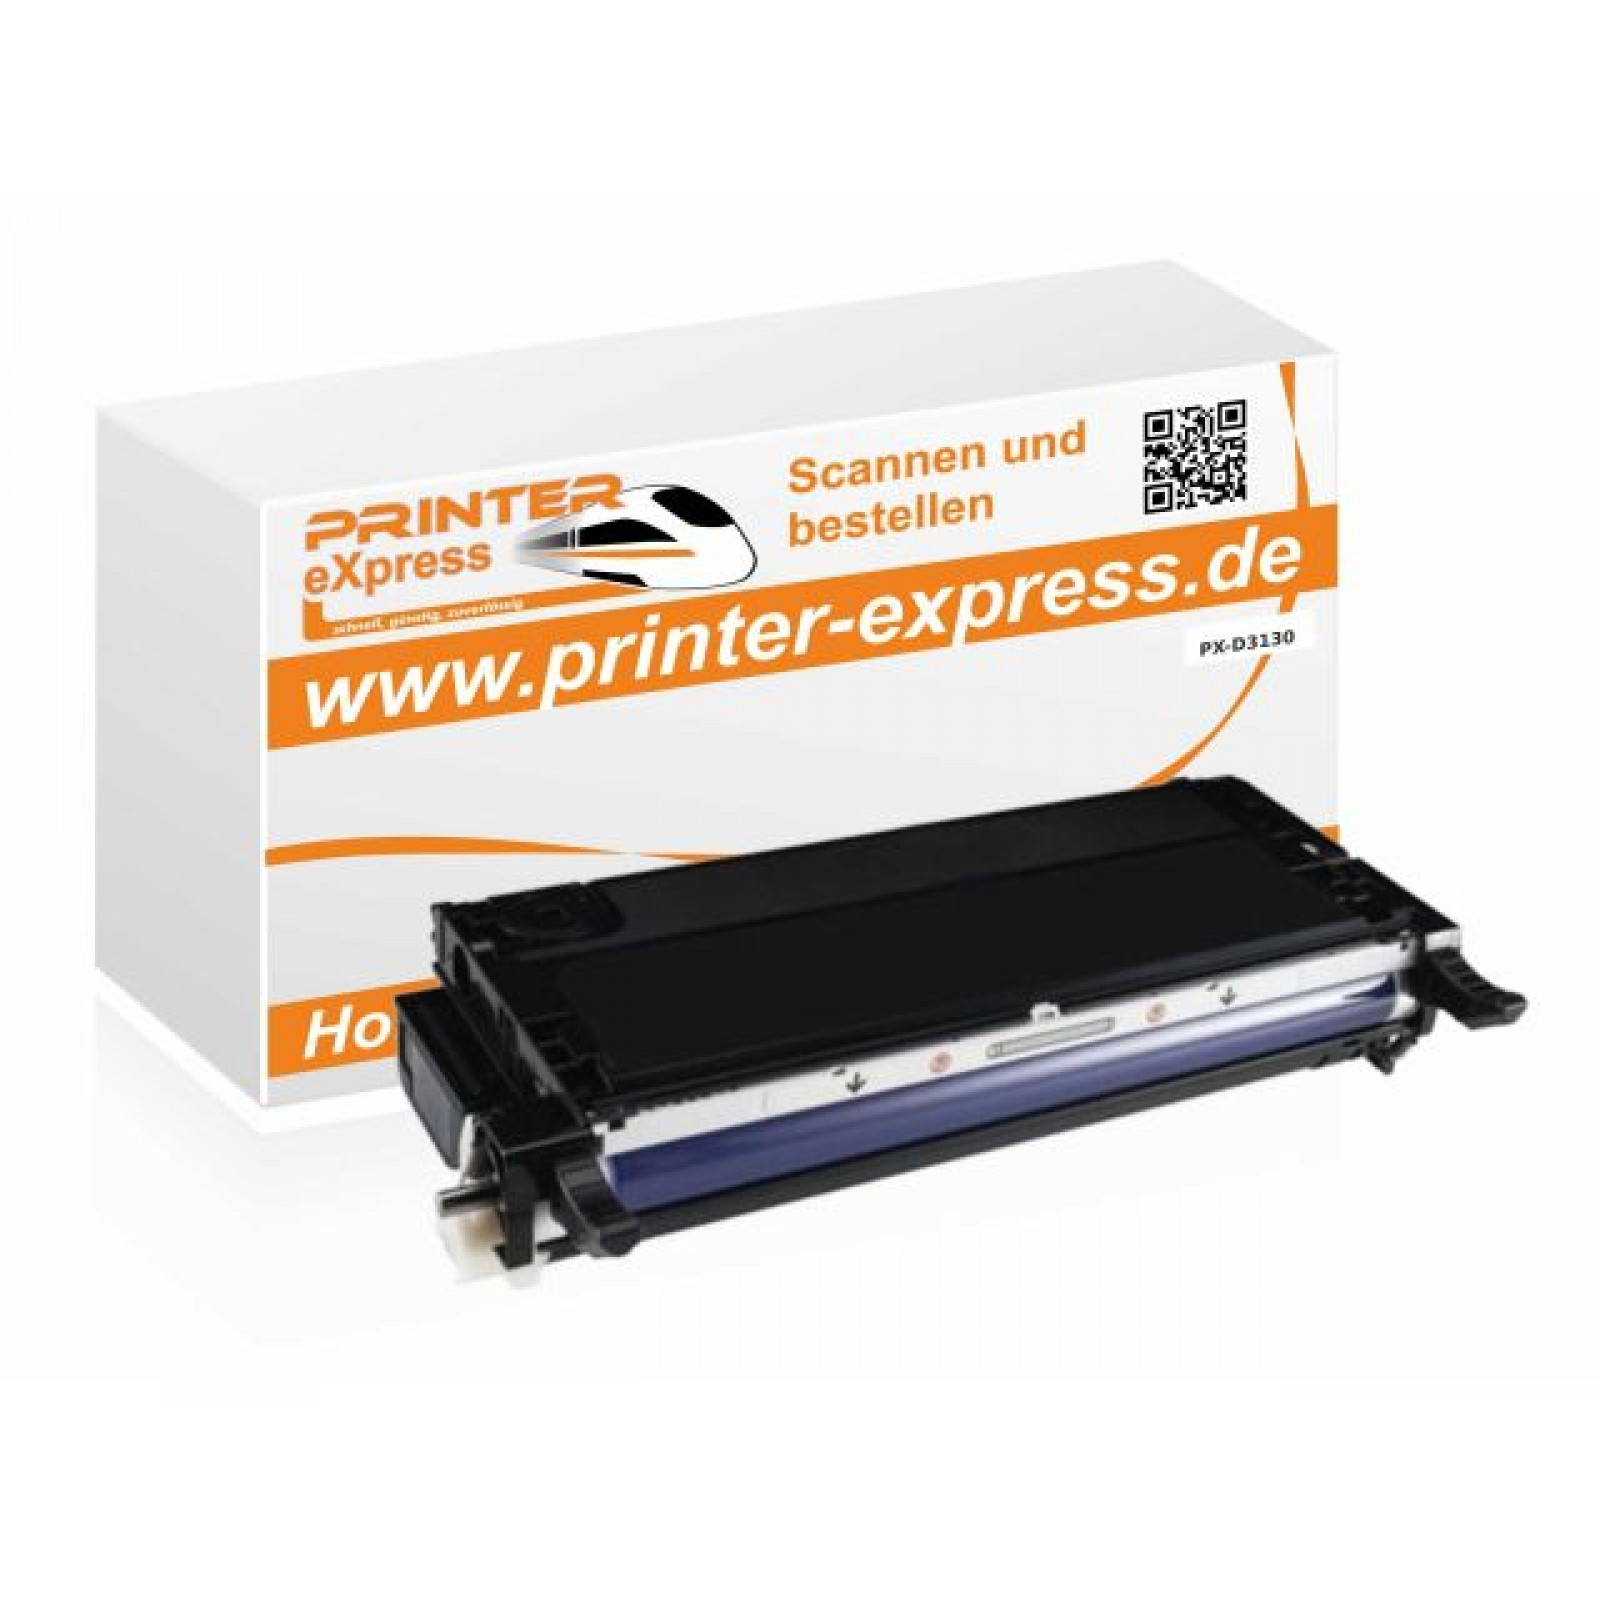 Printer-Express XL Toner alternativ zu Dell 3130 schwarz 9000 Seiten